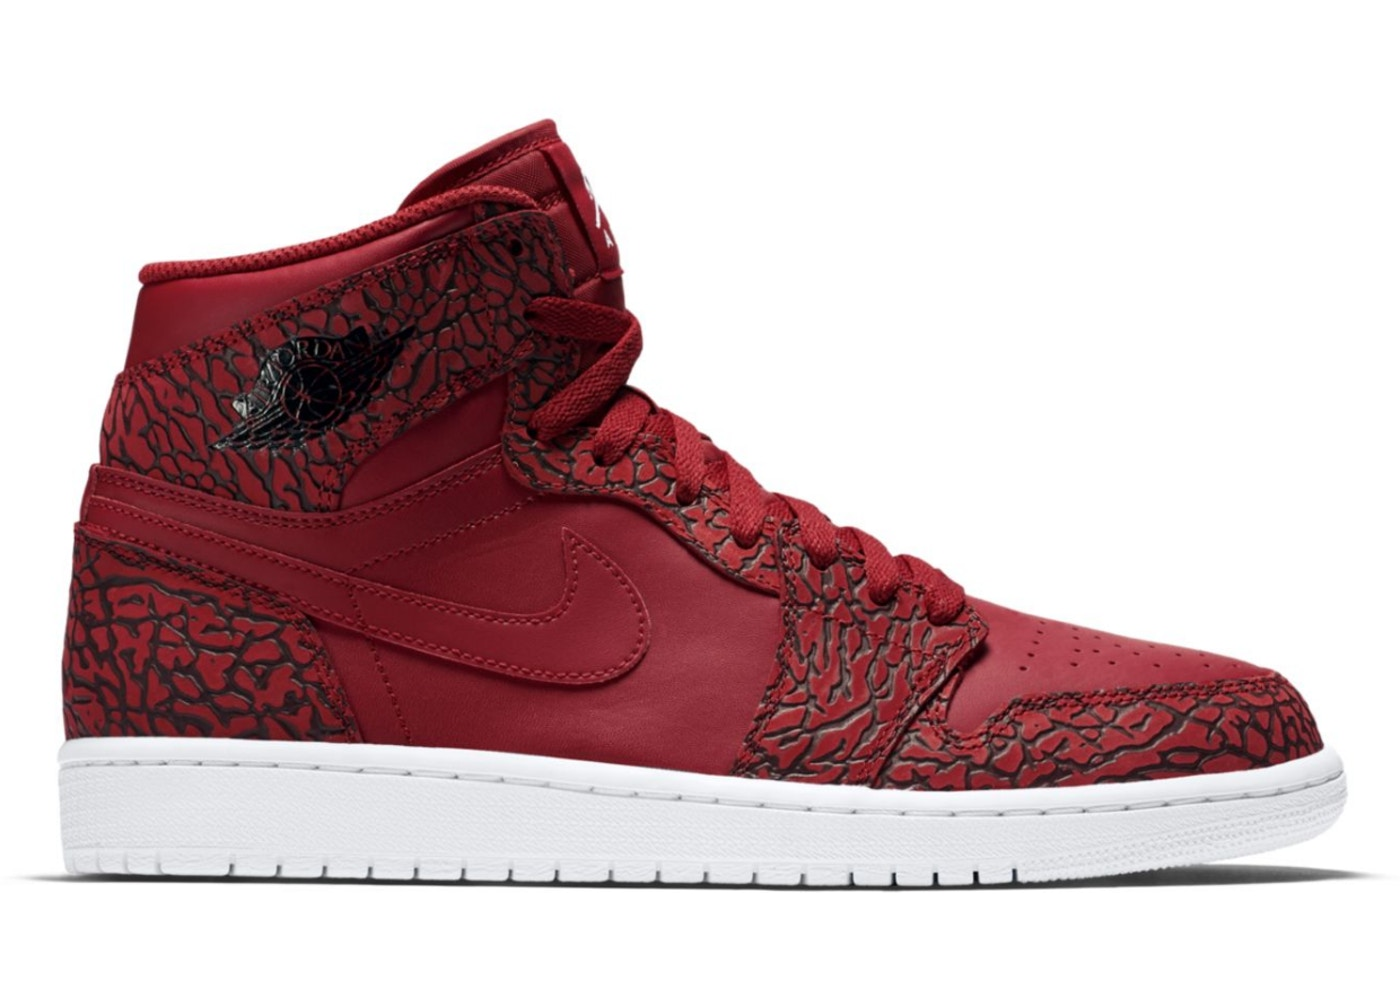 air jordan 1 red elephant fe6eaef7dc73